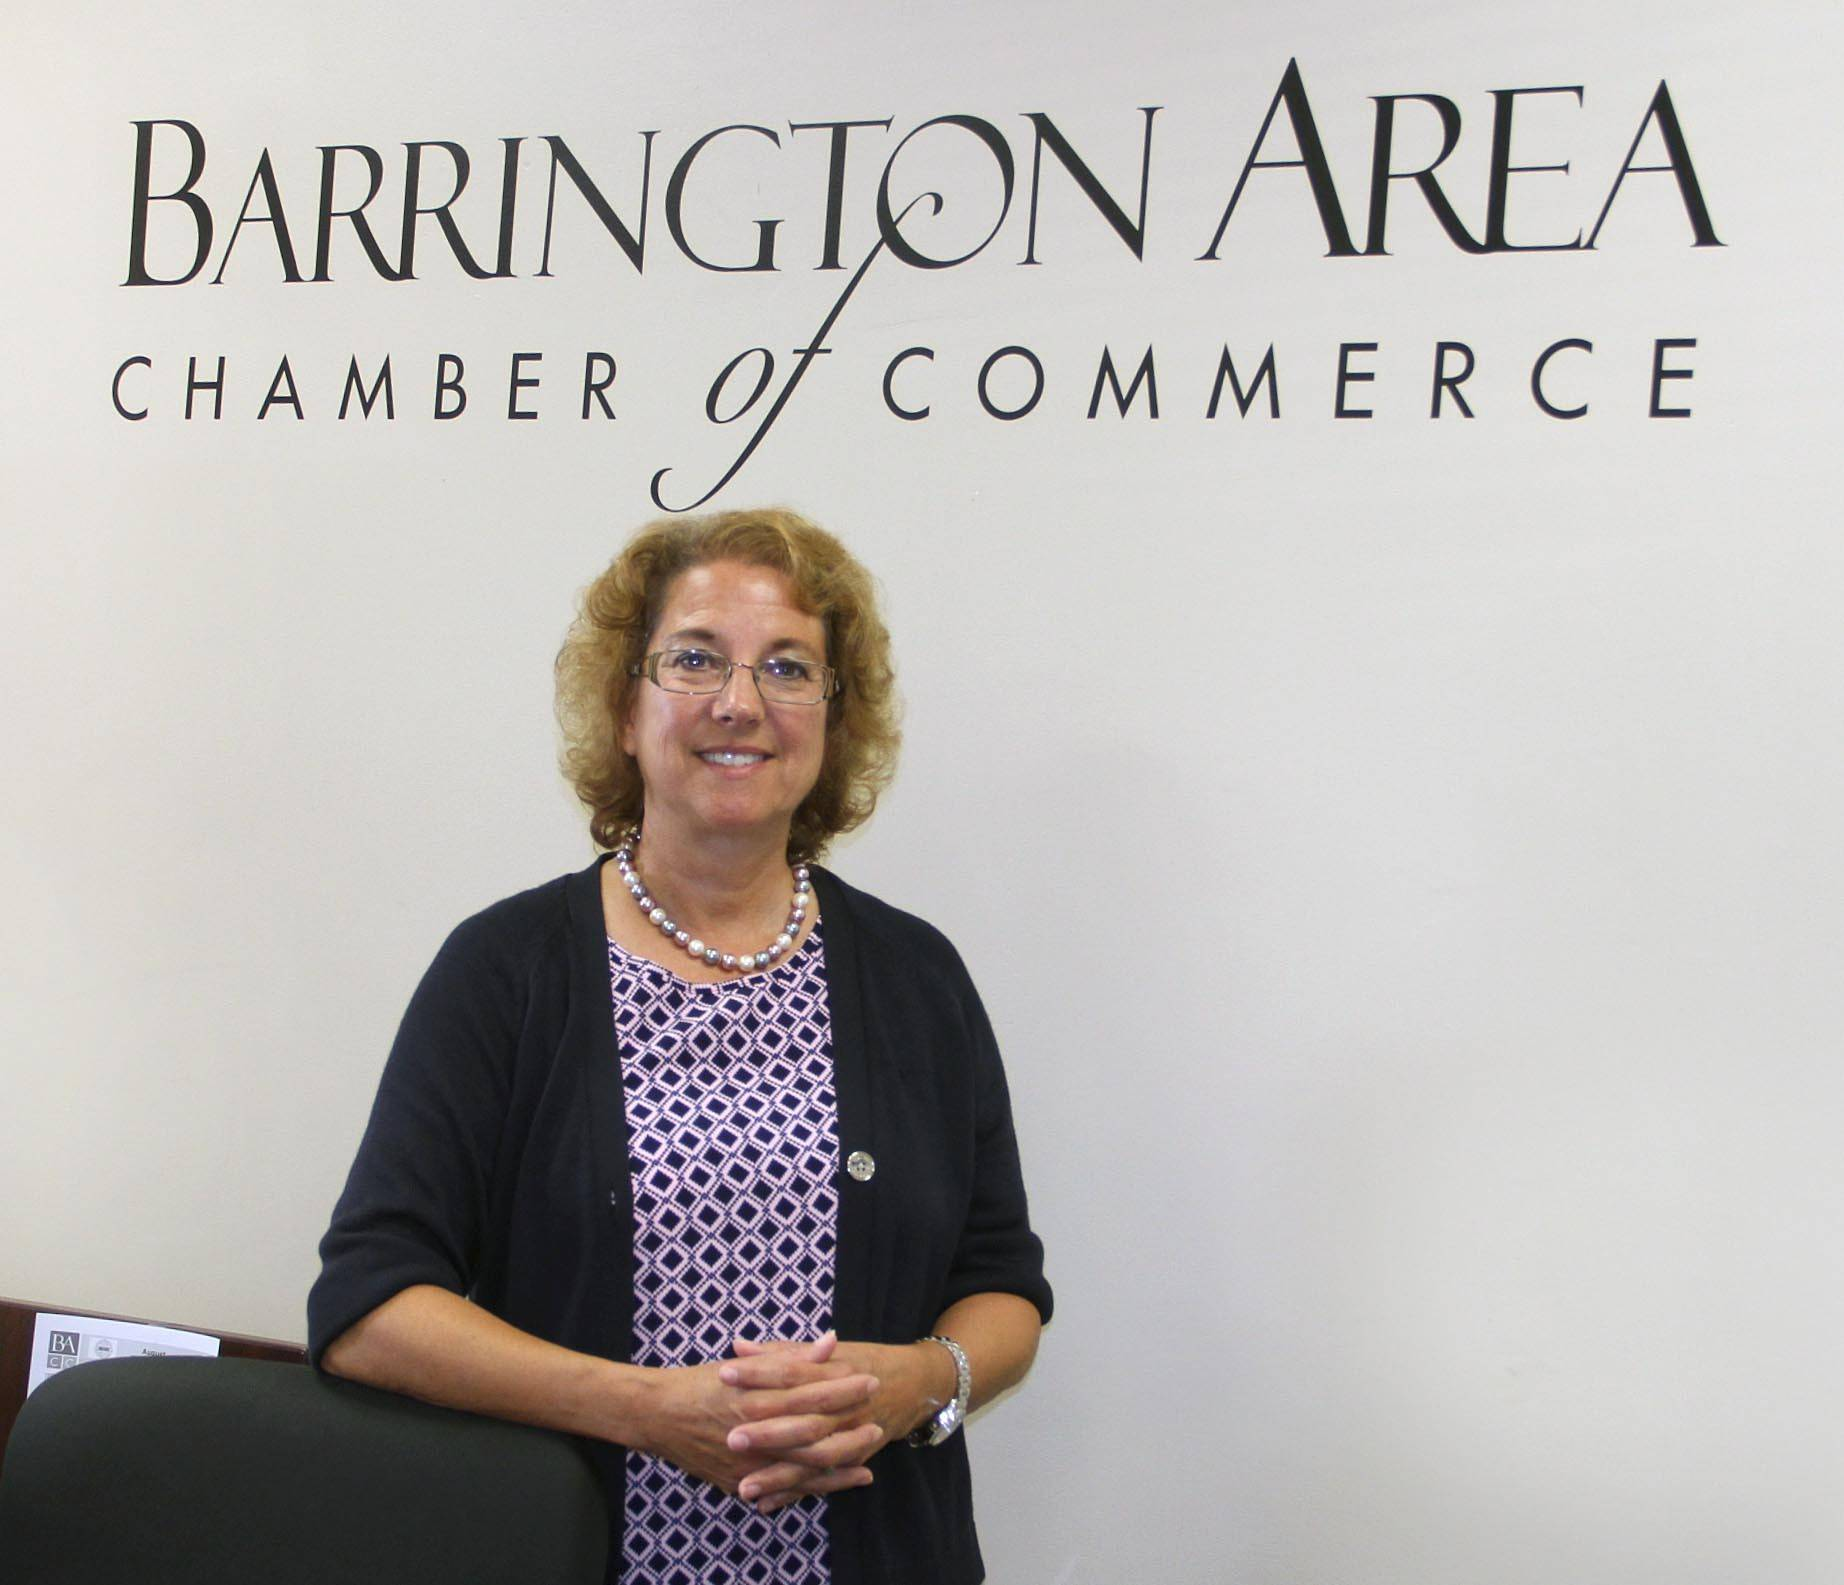 Suzanne Corr, president and CEO of the Barrington Area Chamber of Commerce.